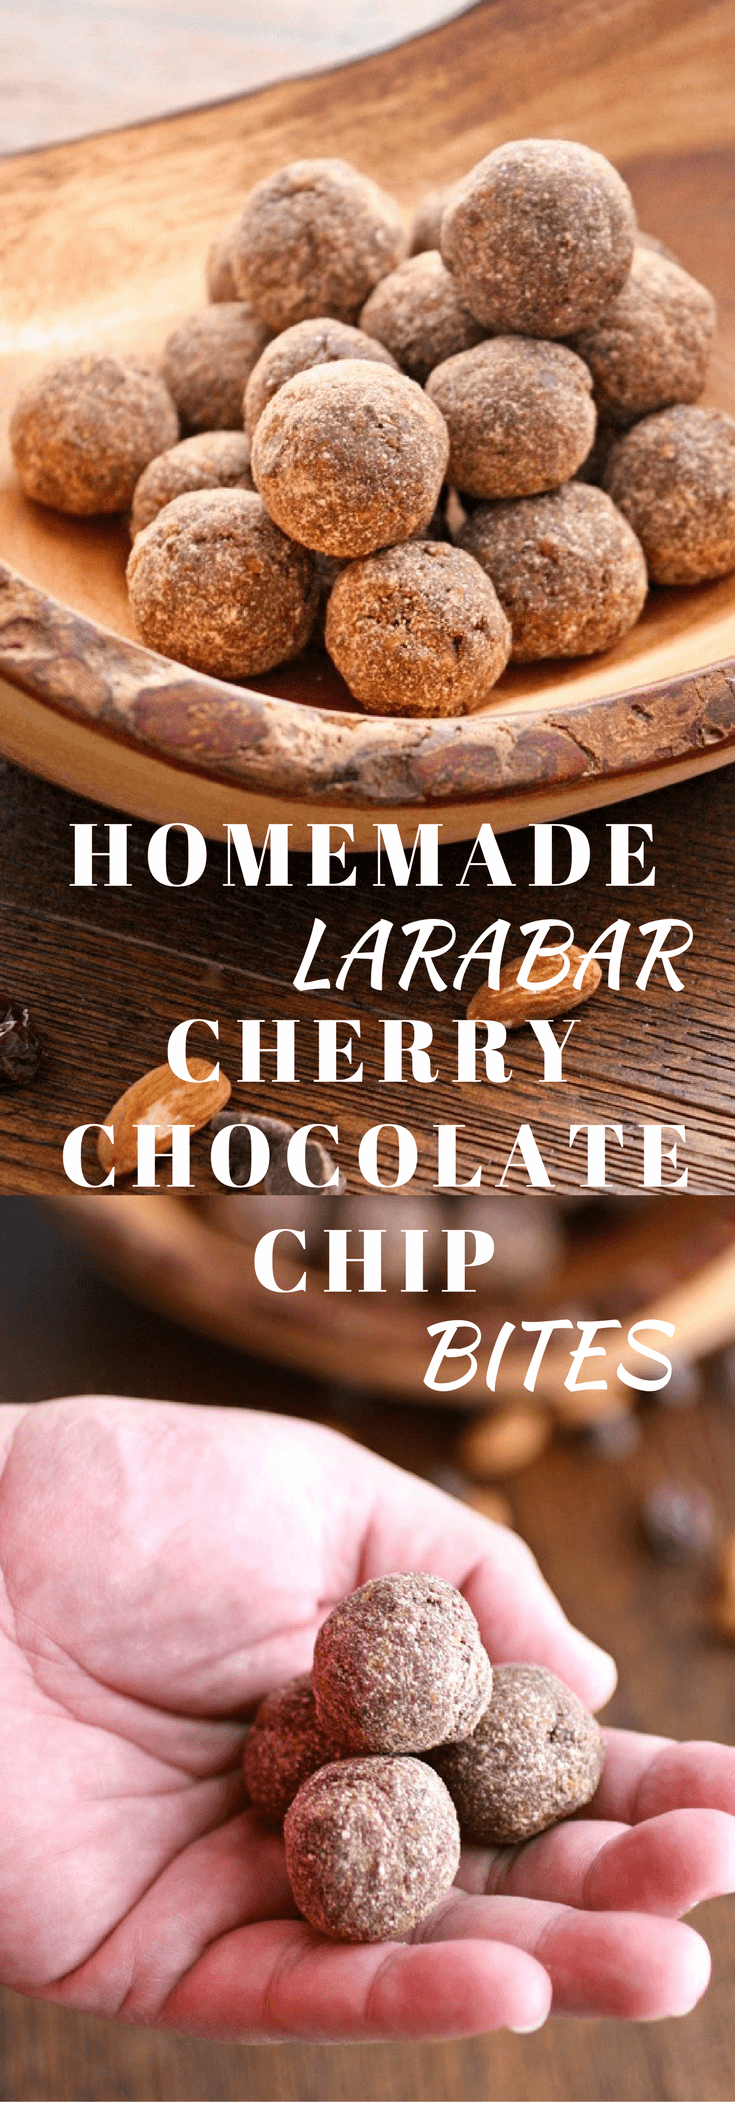 Homemade Larabar Cherry Chocolate Chip Bites are perfet to satisfy any snack attack! They're healthy, and easy to make, too!